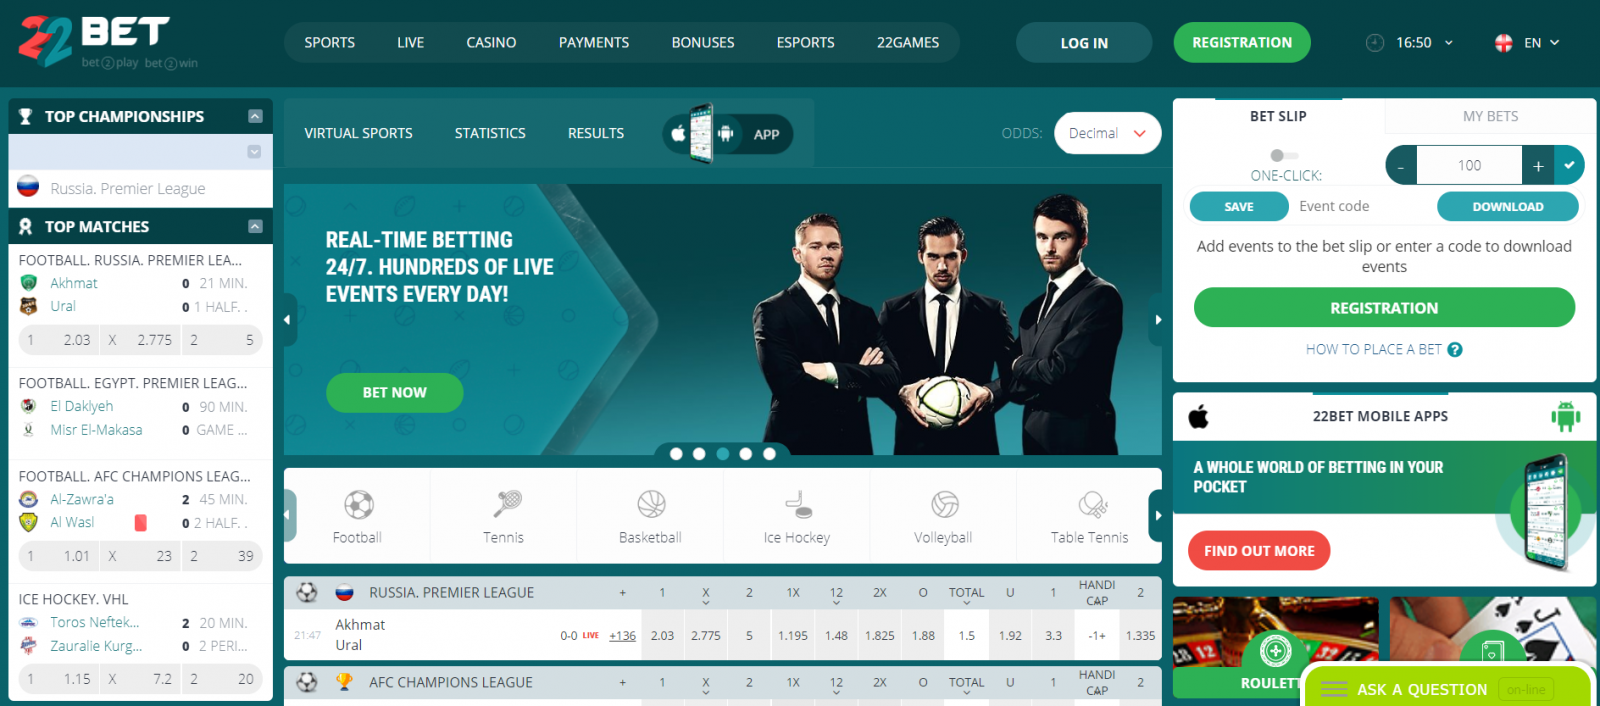 22bet betting company review